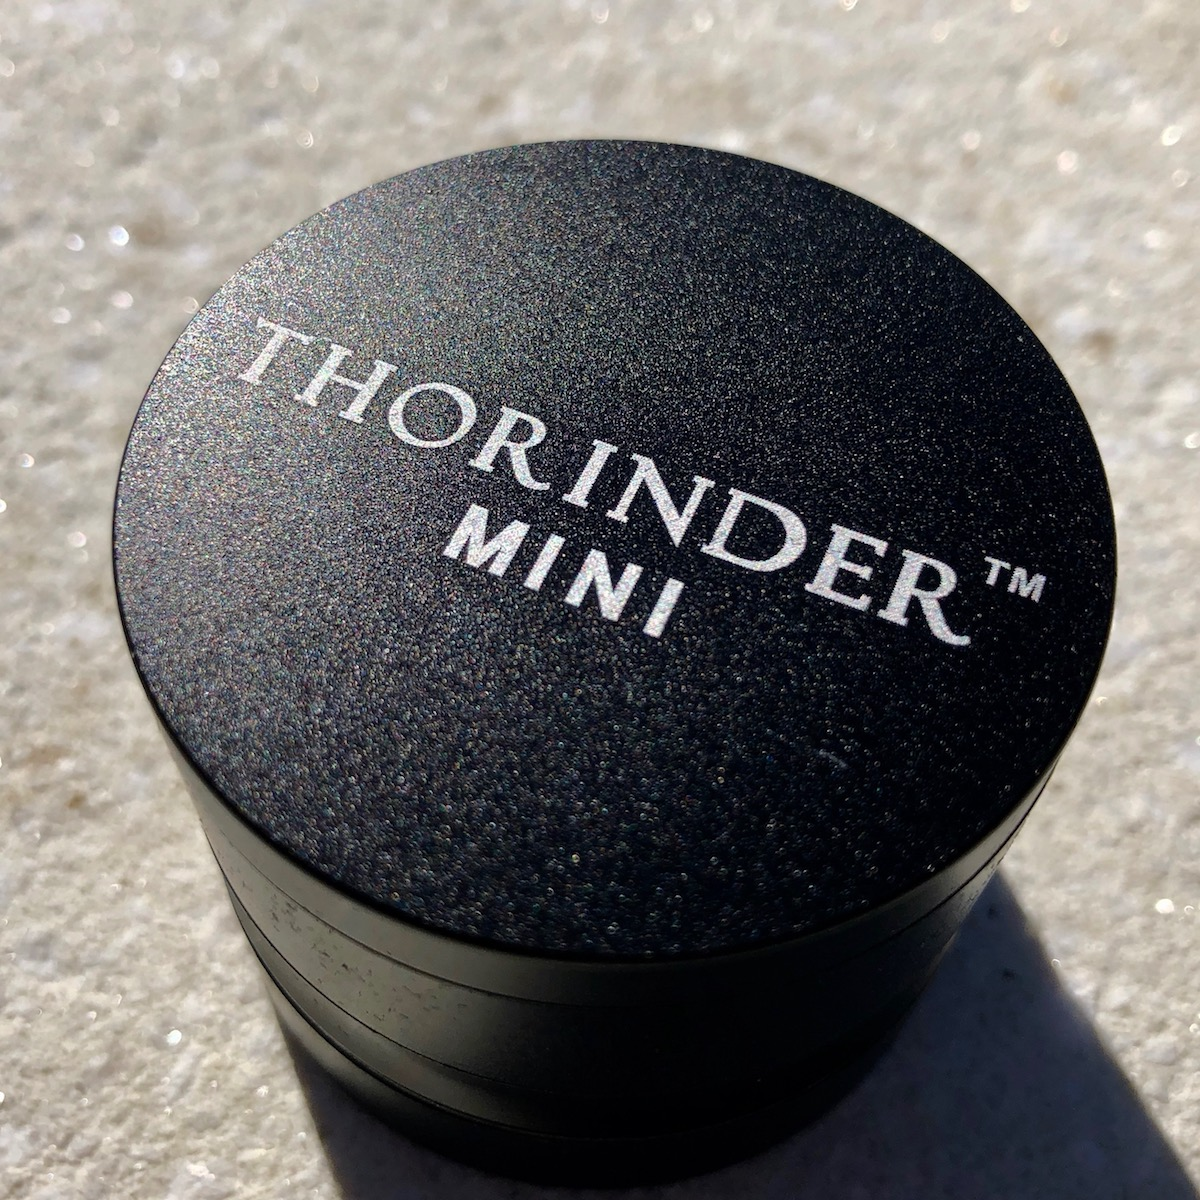 Thorinder: in case you forget which model you bought